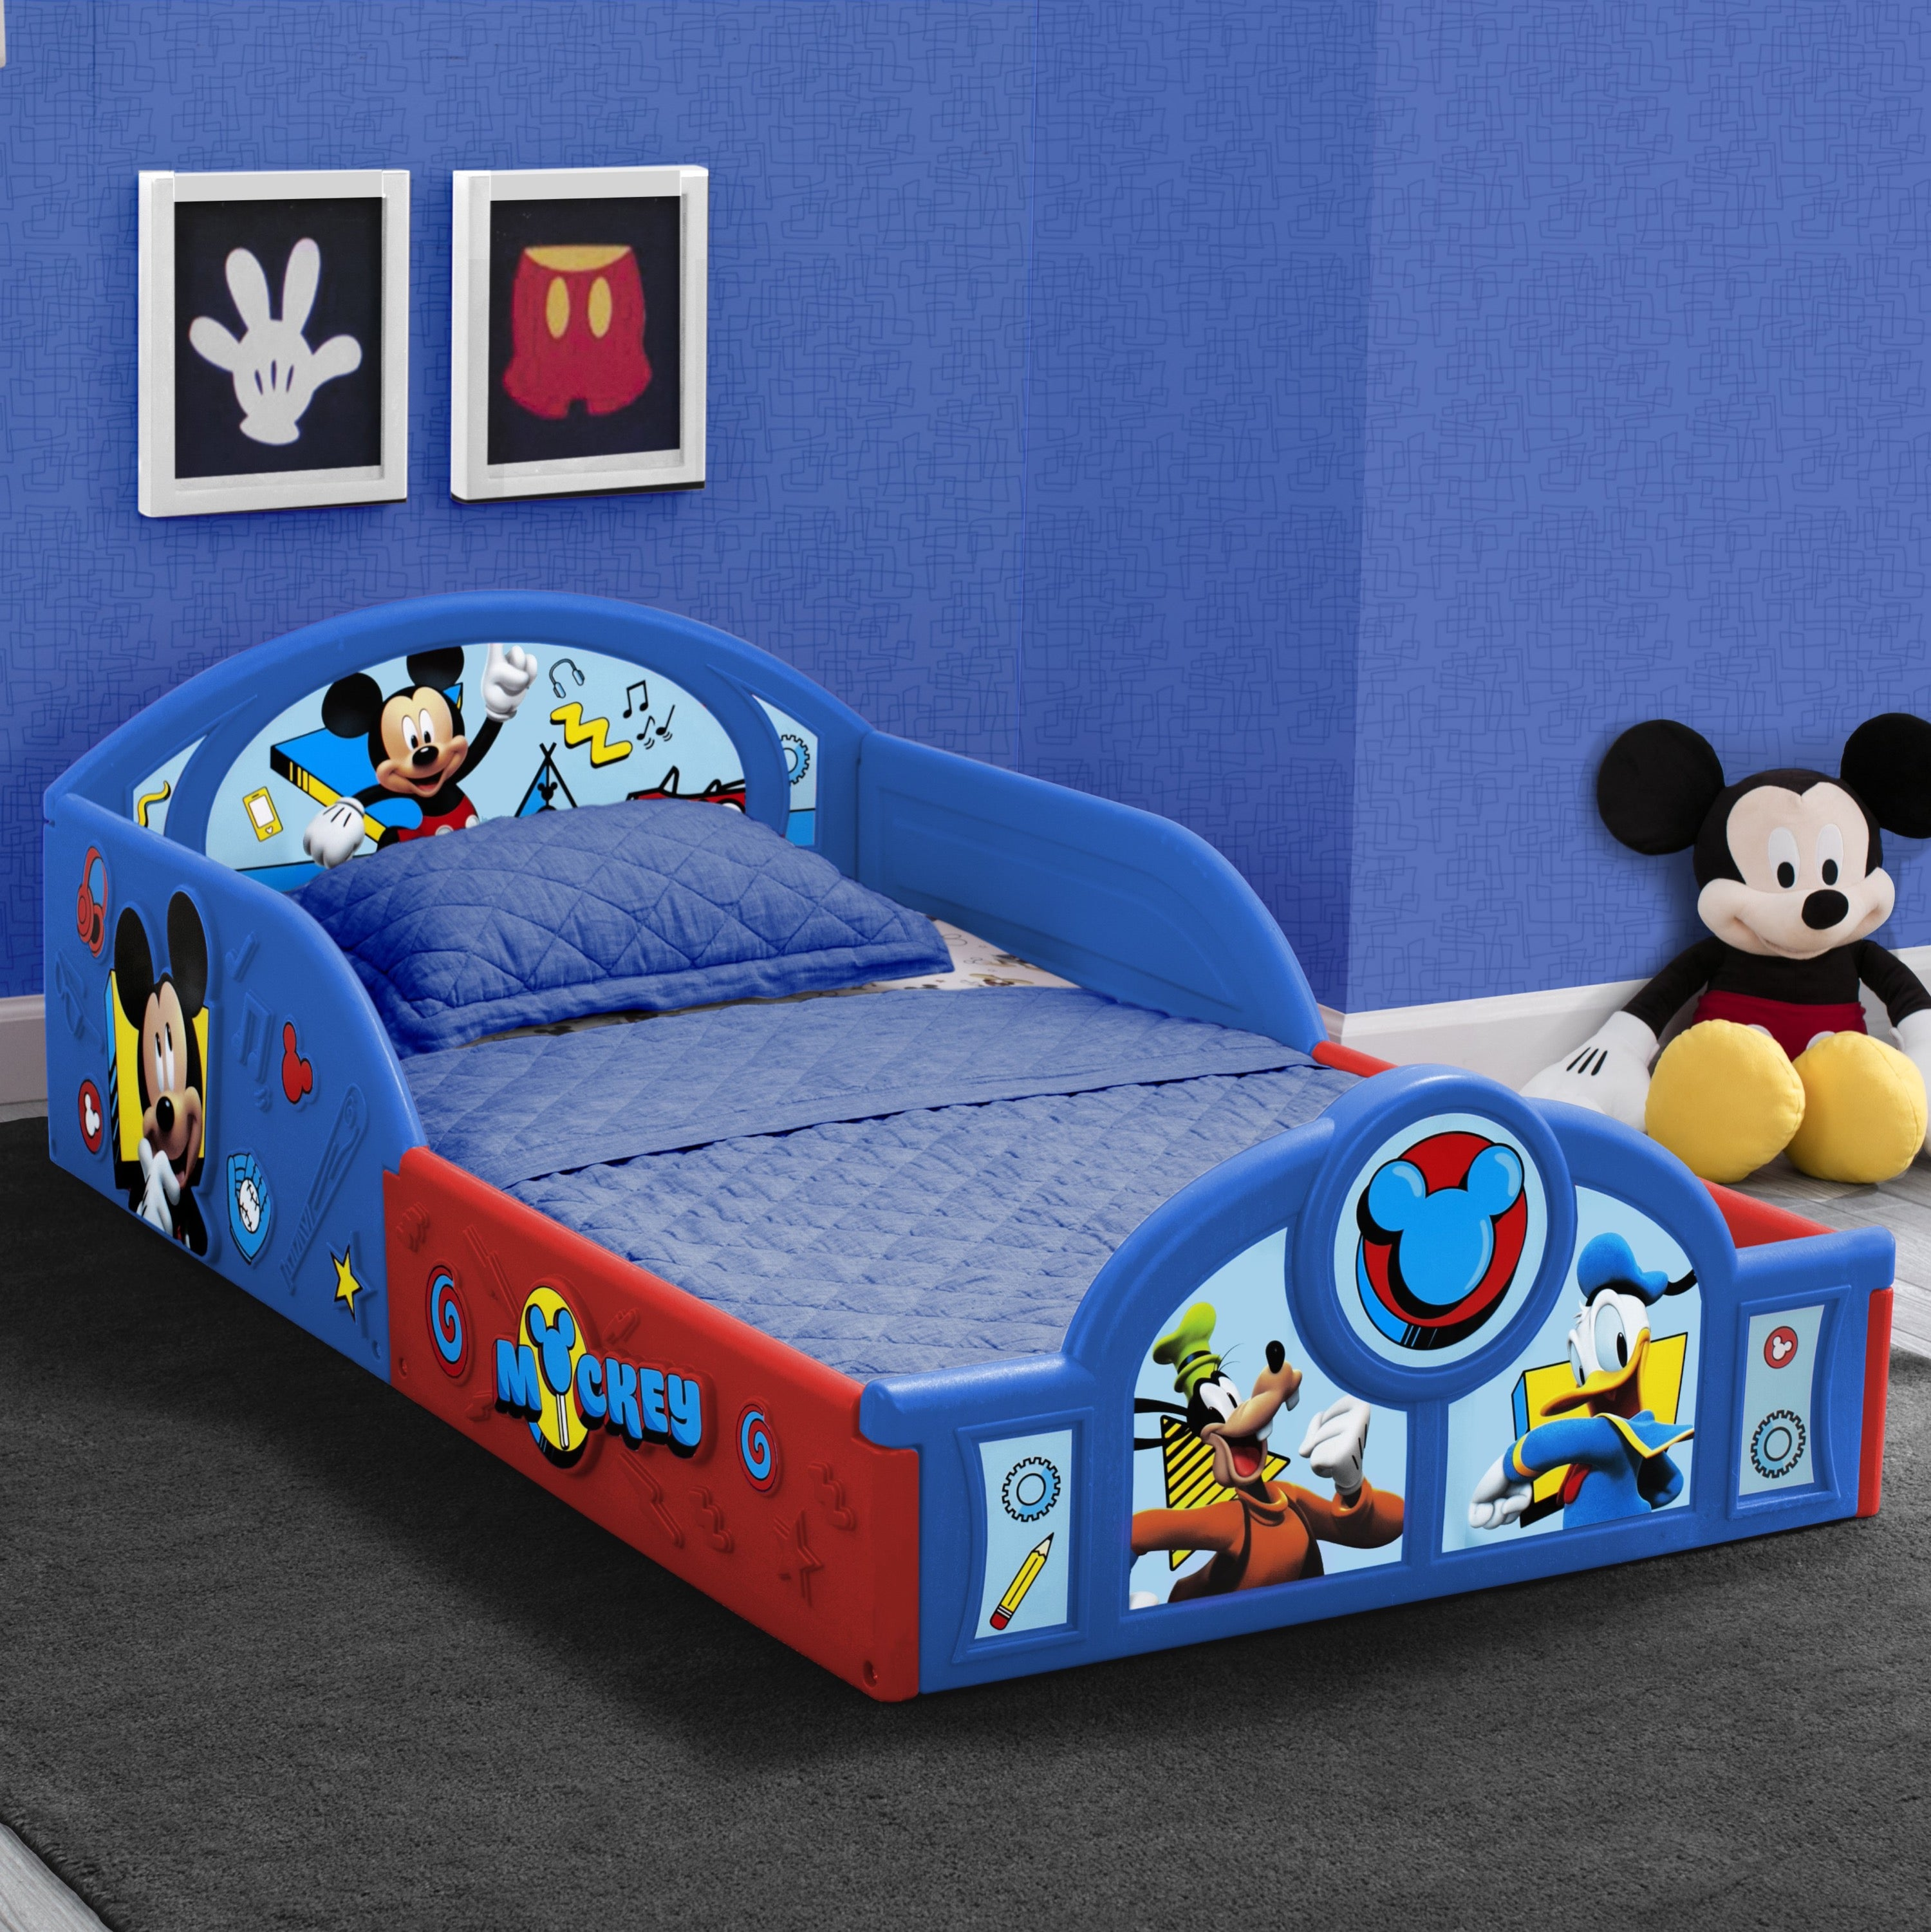 Mickey Mouse Plastic Sleep And Play Toddler Bed Delta Children